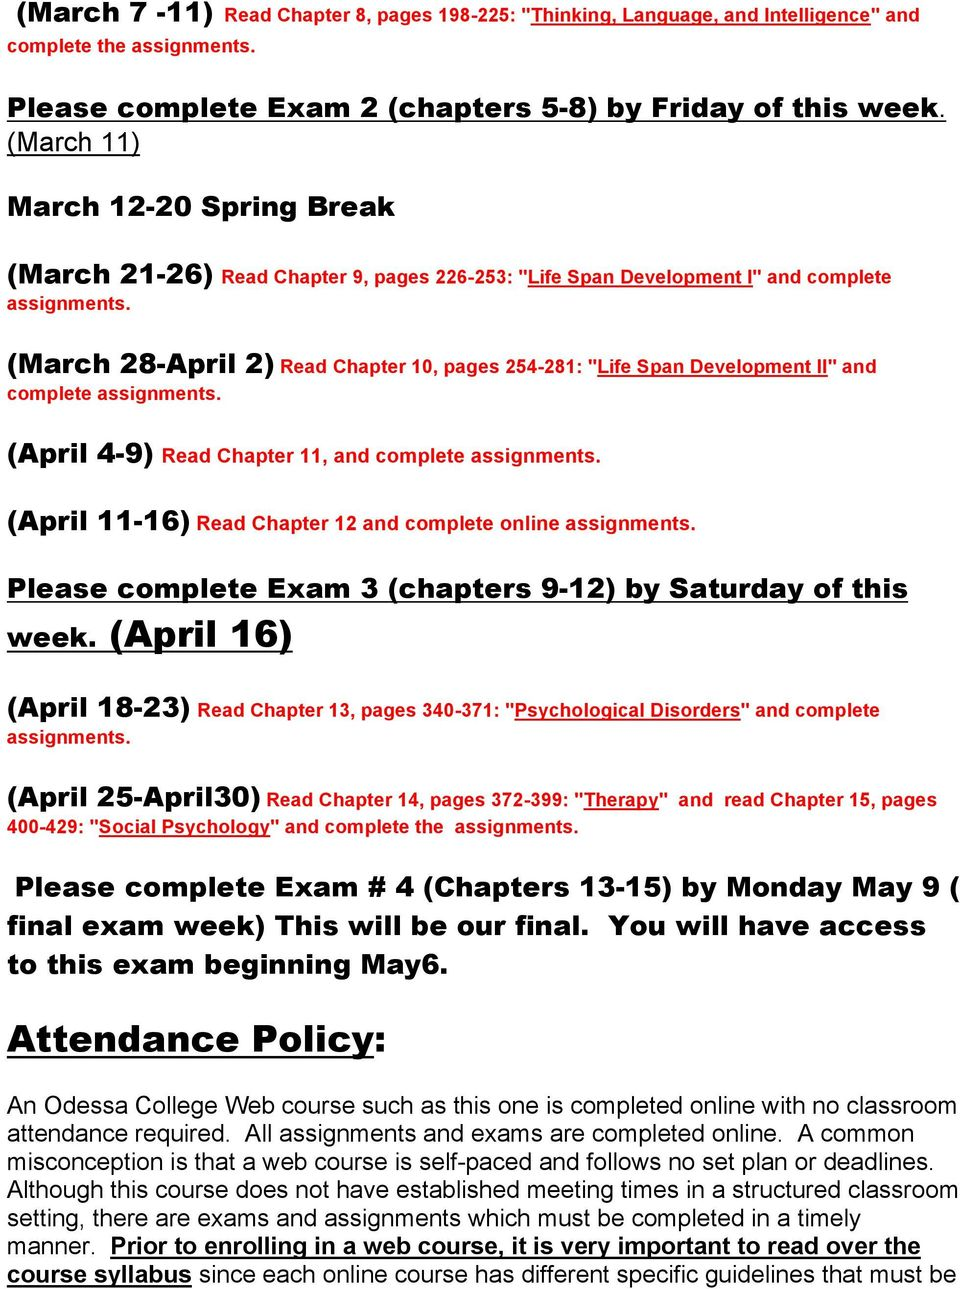 and complete (April 4-9) Read Chapter 11, and complete (April 11-16) Read Chapter 12 and complete online Please complete Exam 3 (chapters 9-12) by Saturday of this week.